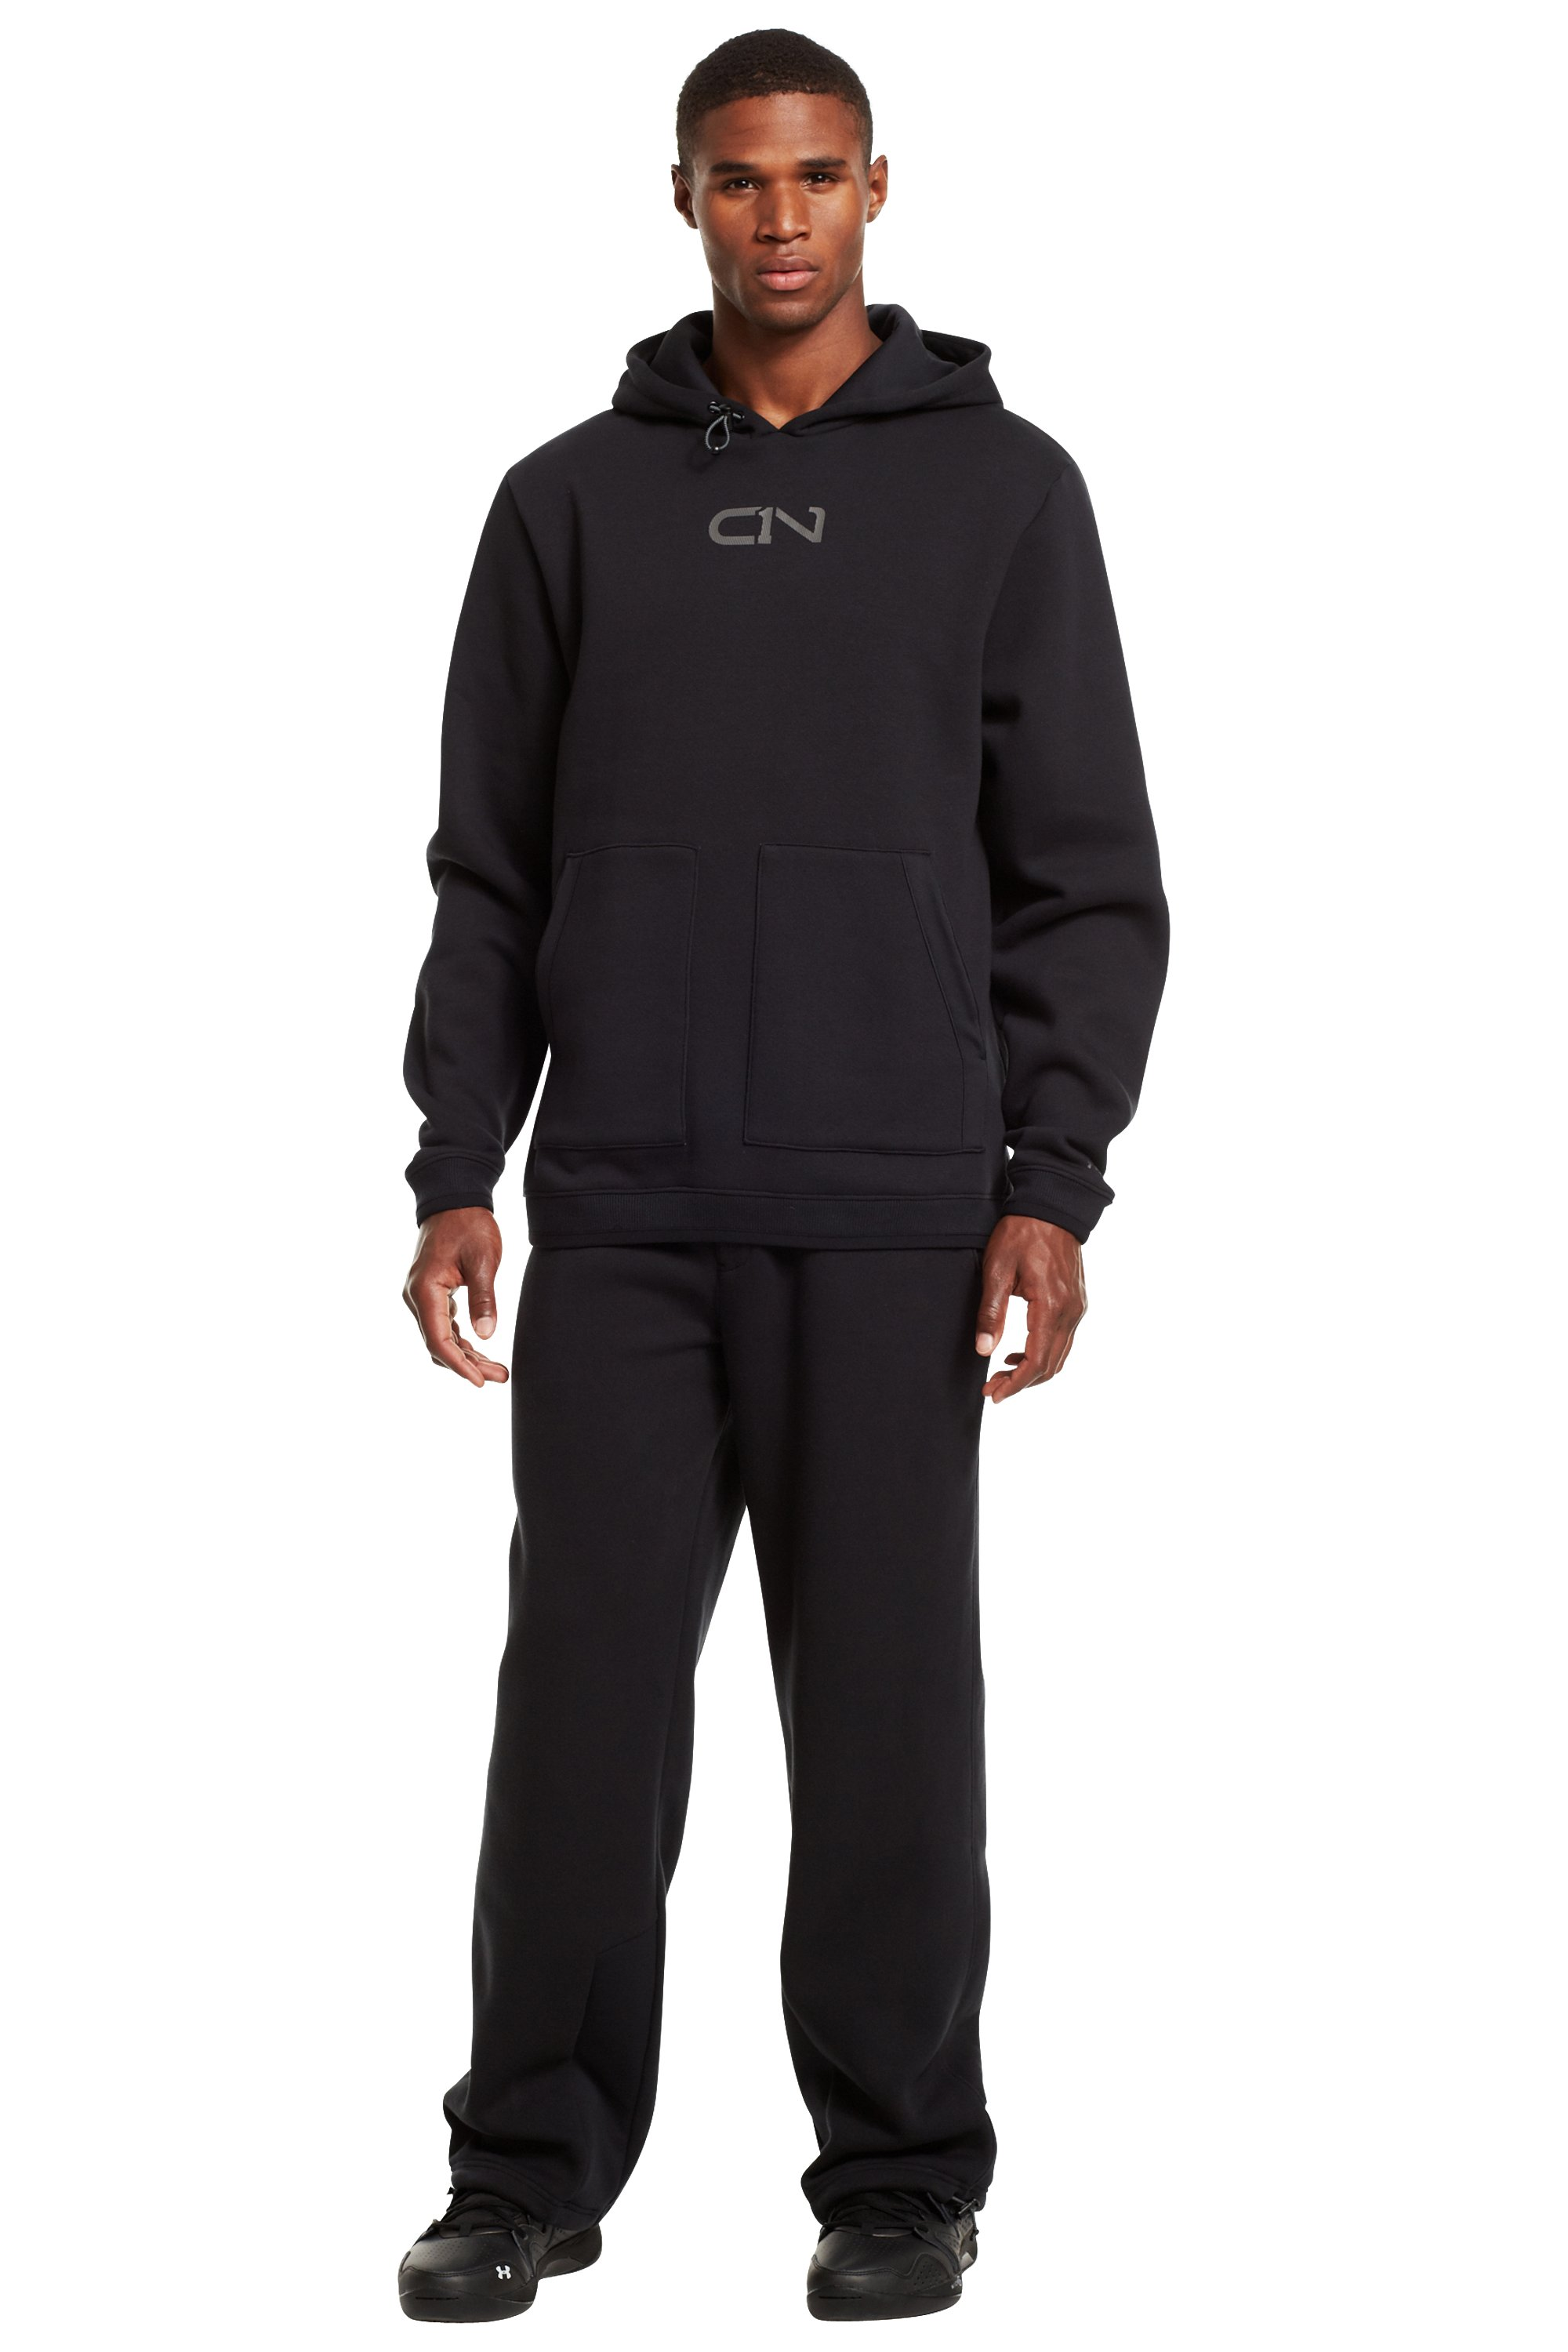 Men's C1N Charged Cotton® Storm Pants, Black